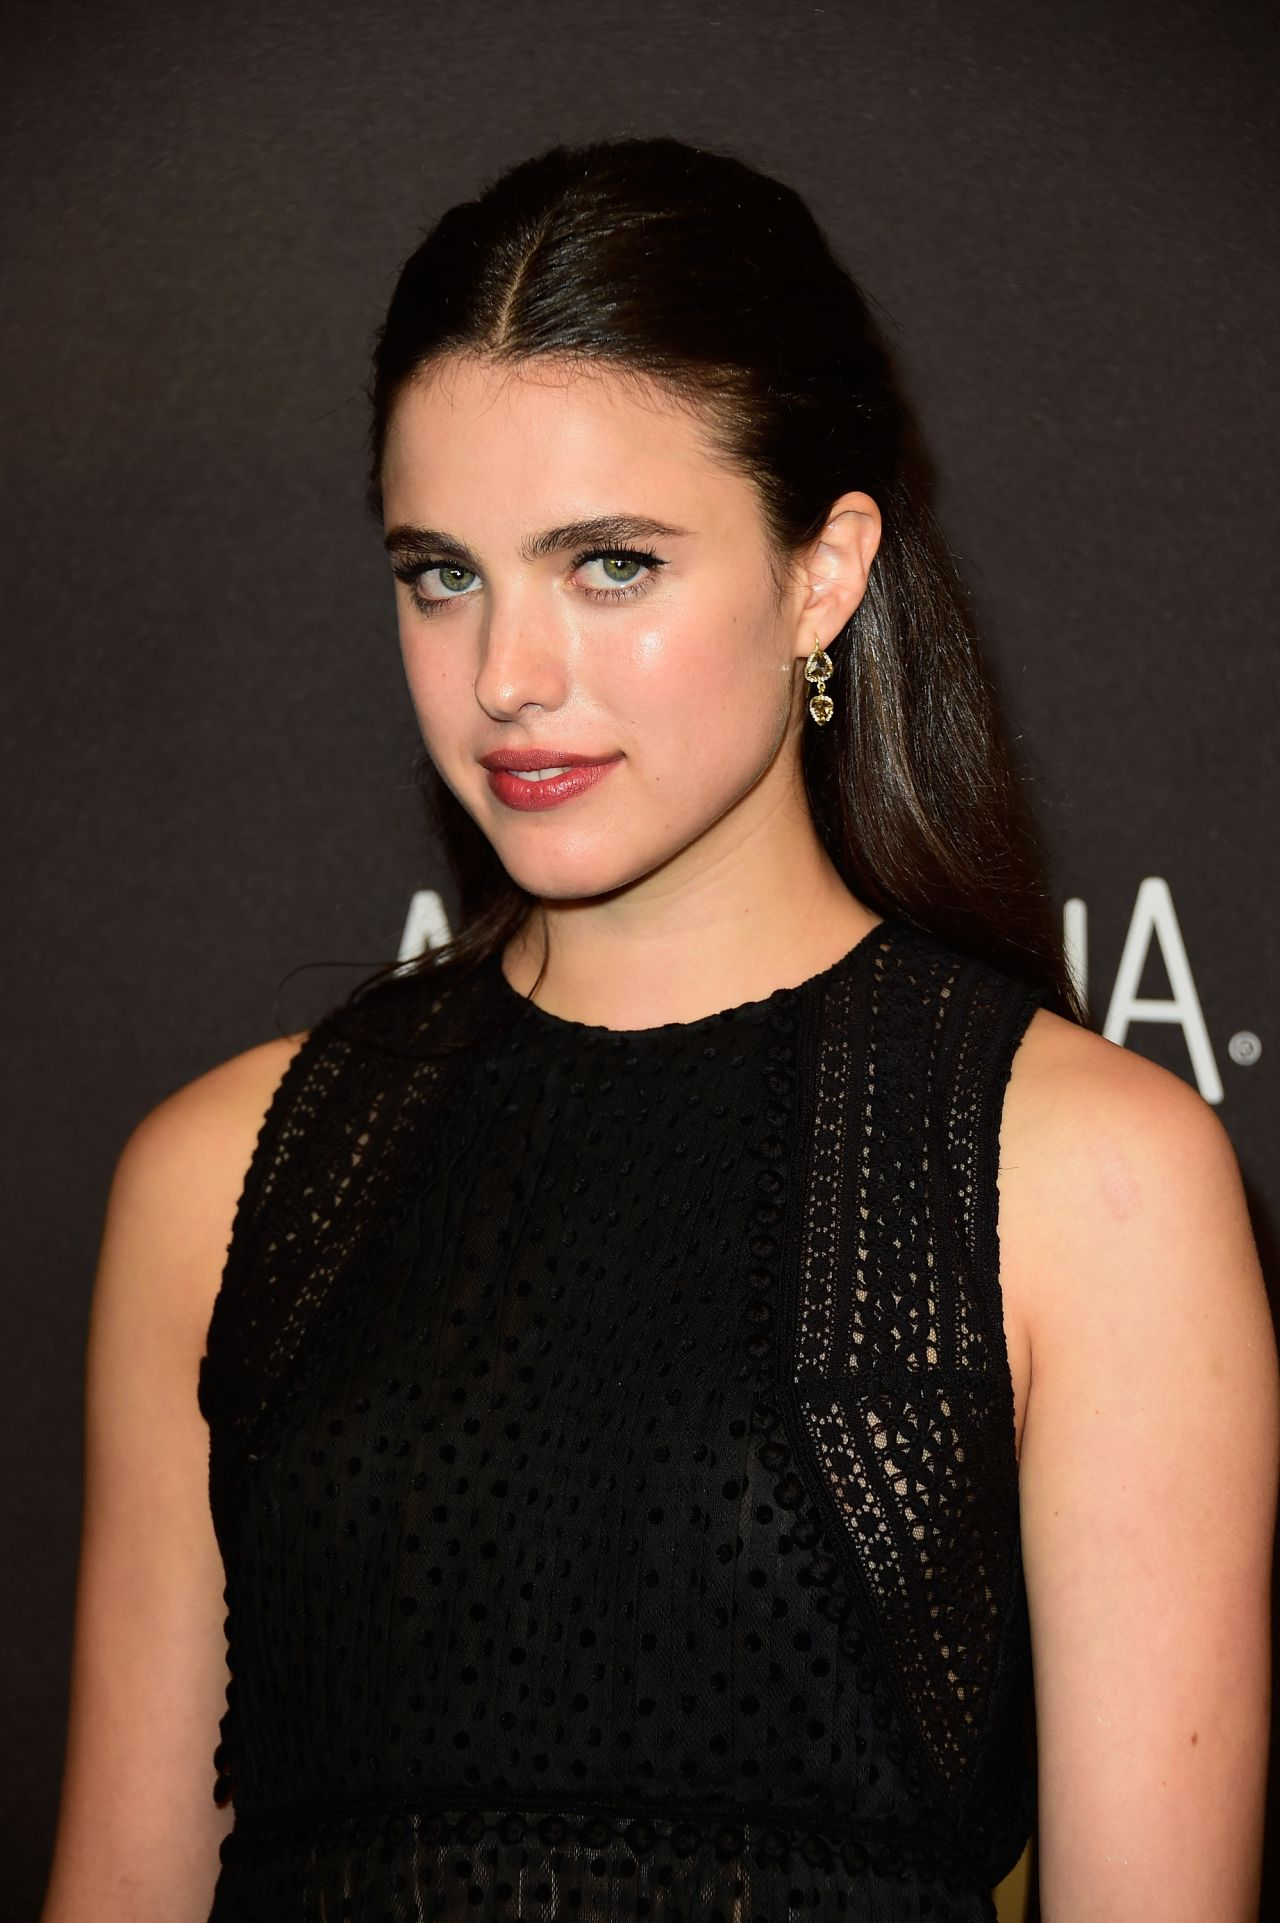 margaret qualley gifmargaret qualley gif, margaret qualley model, margaret qualley palo alto, margaret qualley kenzo, margaret qualley daily, margaret qualley dance, margaret qualley twitter, margaret qualley age, margaret qualley site, margaret qualley screencaps, margaret qualley facebook, margaret qualley vk, margaret qualley instagram, margaret qualley music video, margaret qualley parents, margaret qualley ad, margaret qualley wdw, margaret qualley actress, margaret qualley ralph lauren, margaret qualley films